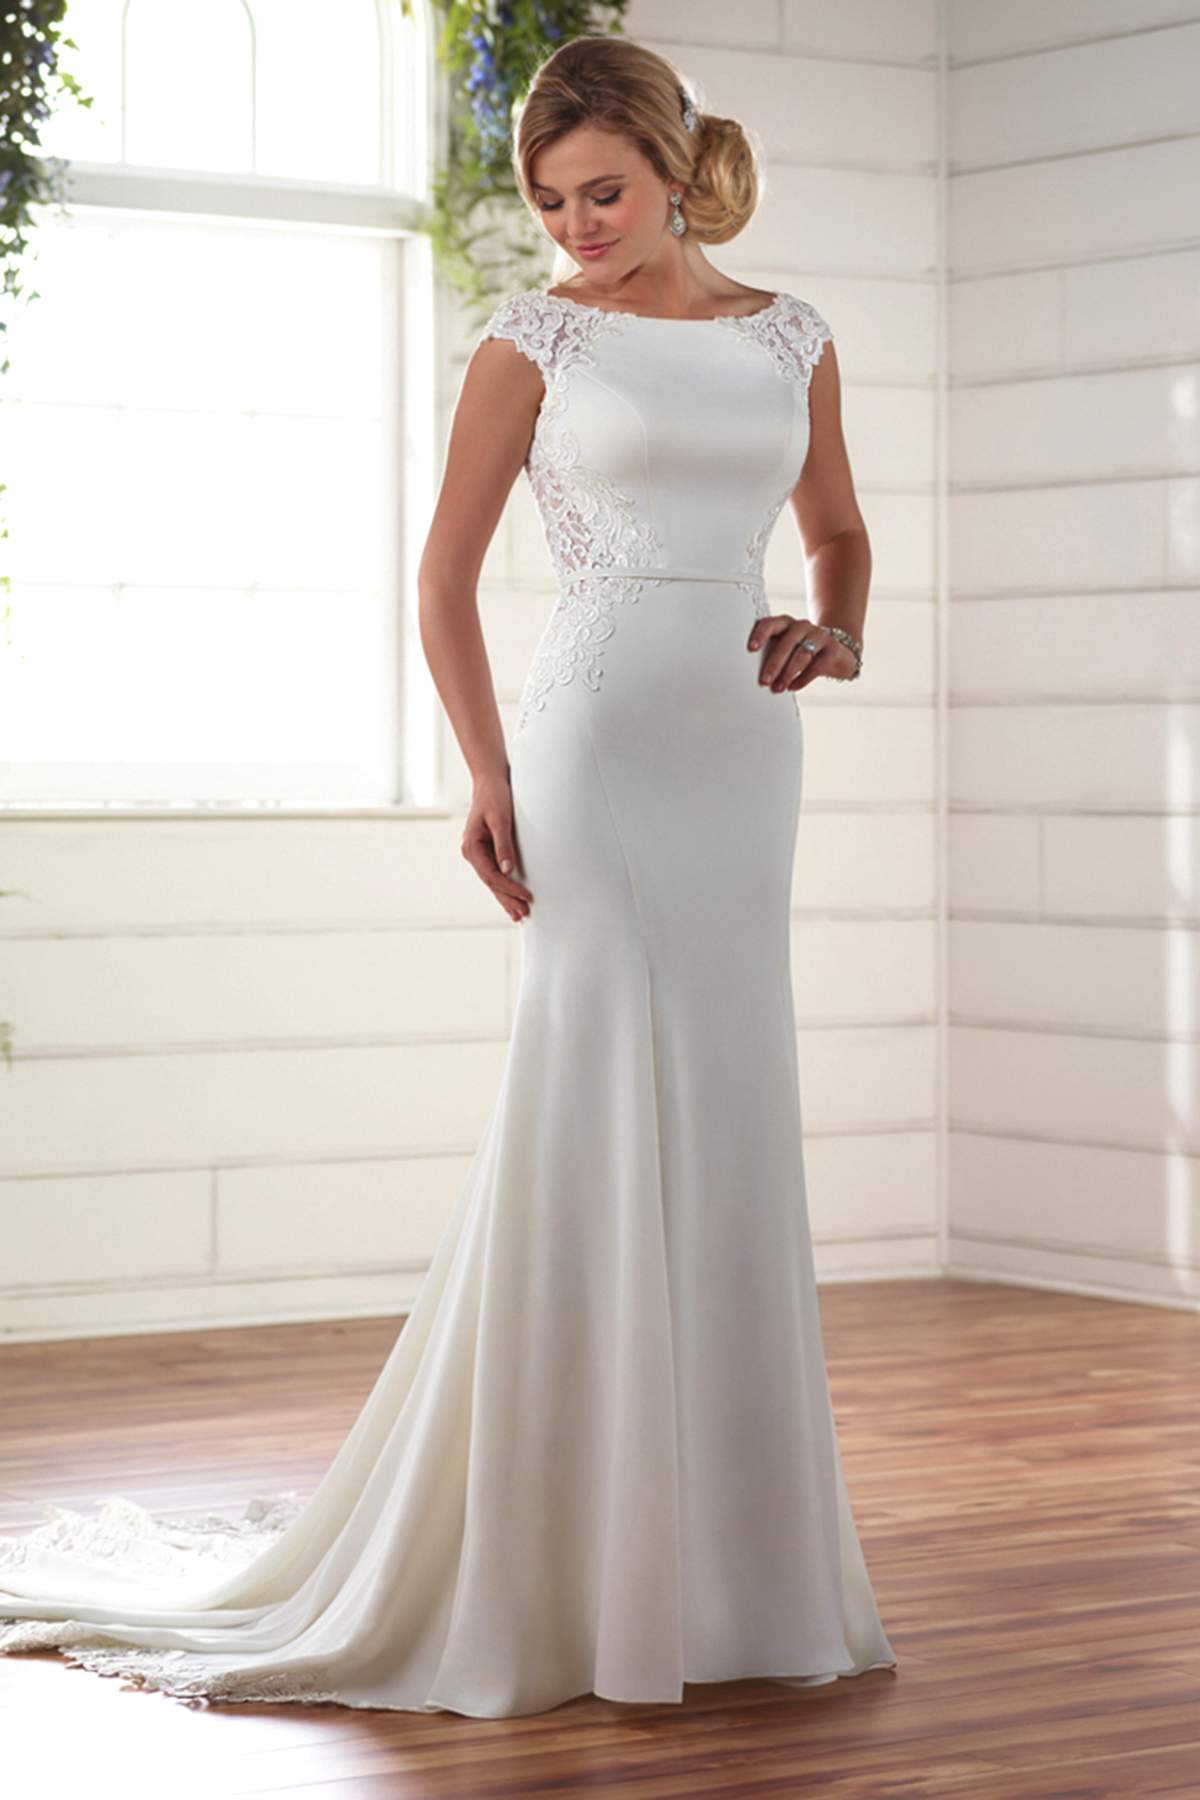 1de2d03bd9 Style D2238 by Essense of Australia - Find Your Dream Dress